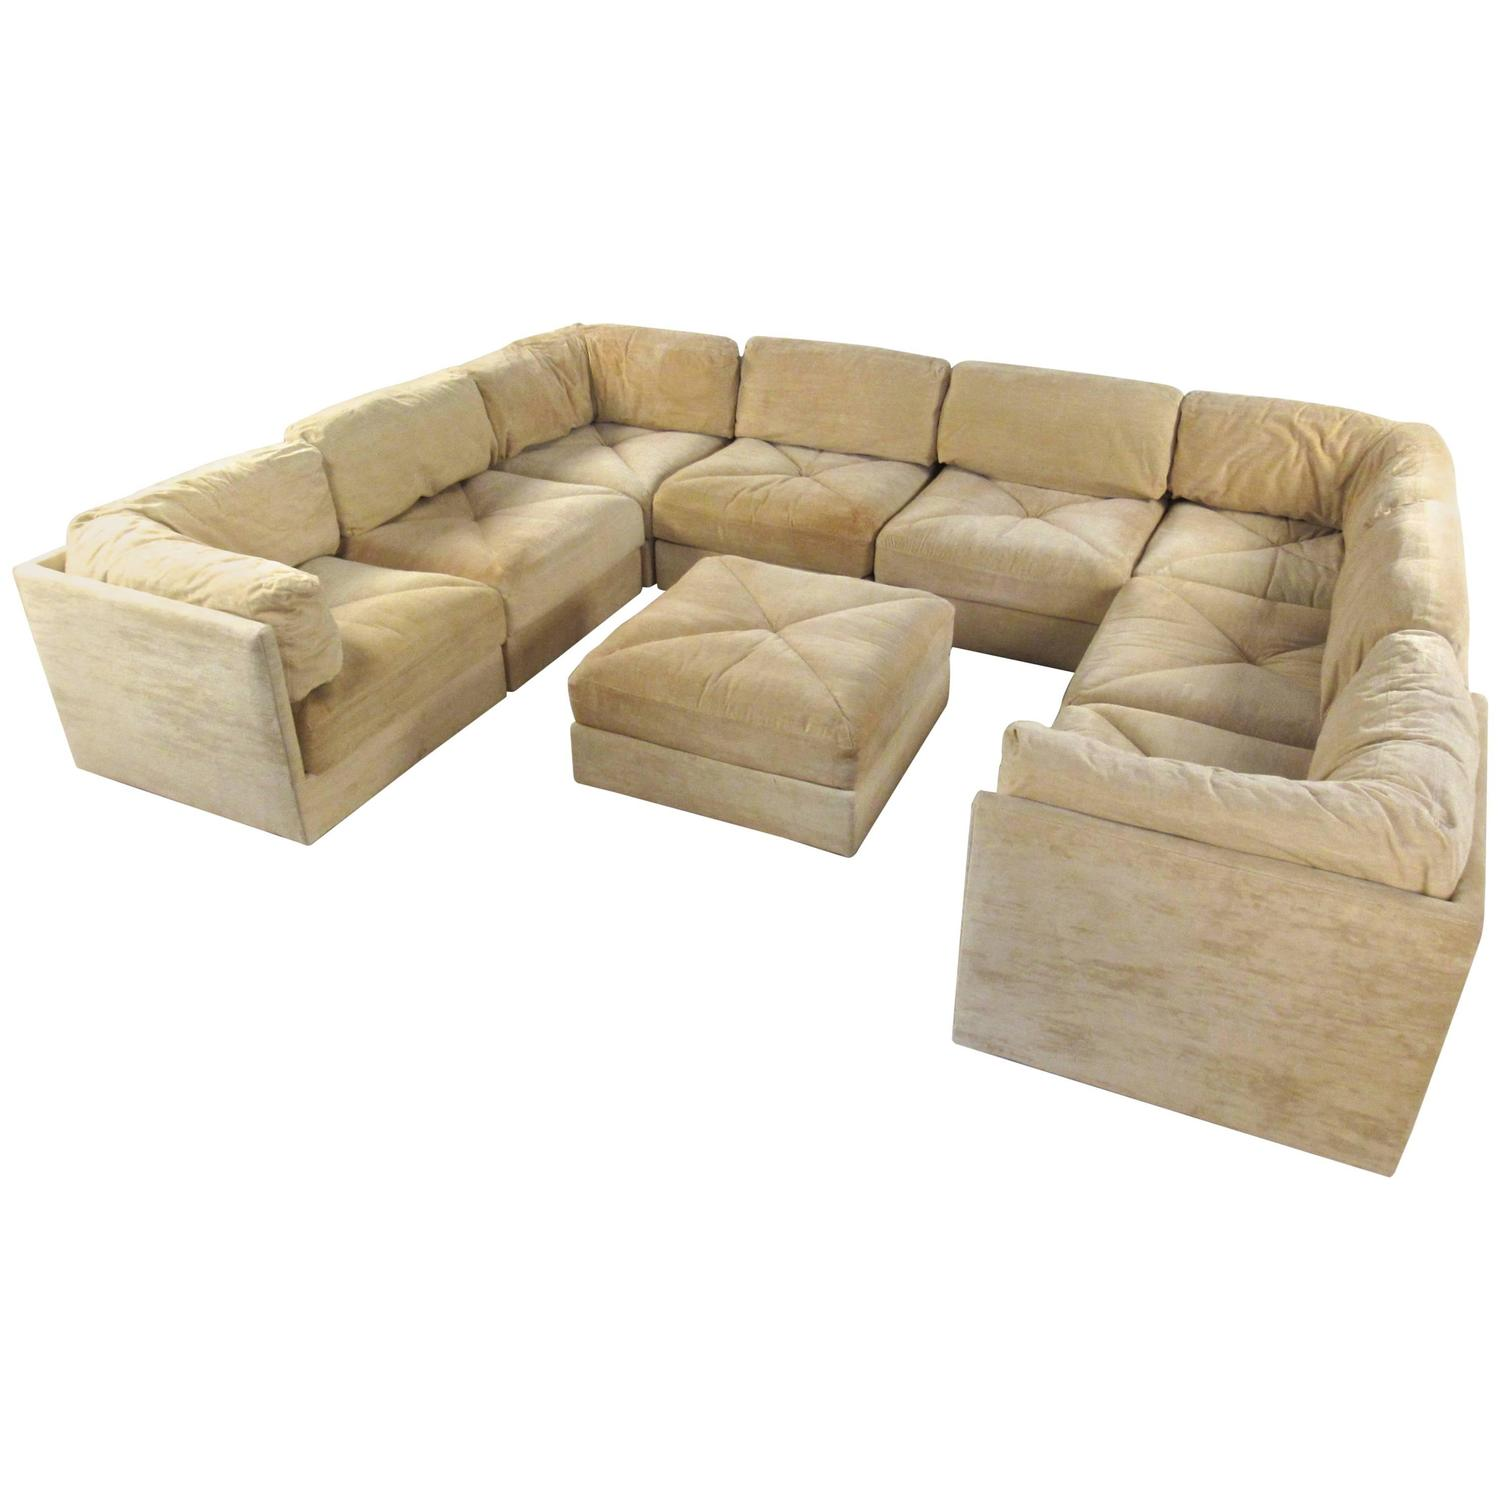 large modern sectional sofas photo - 9